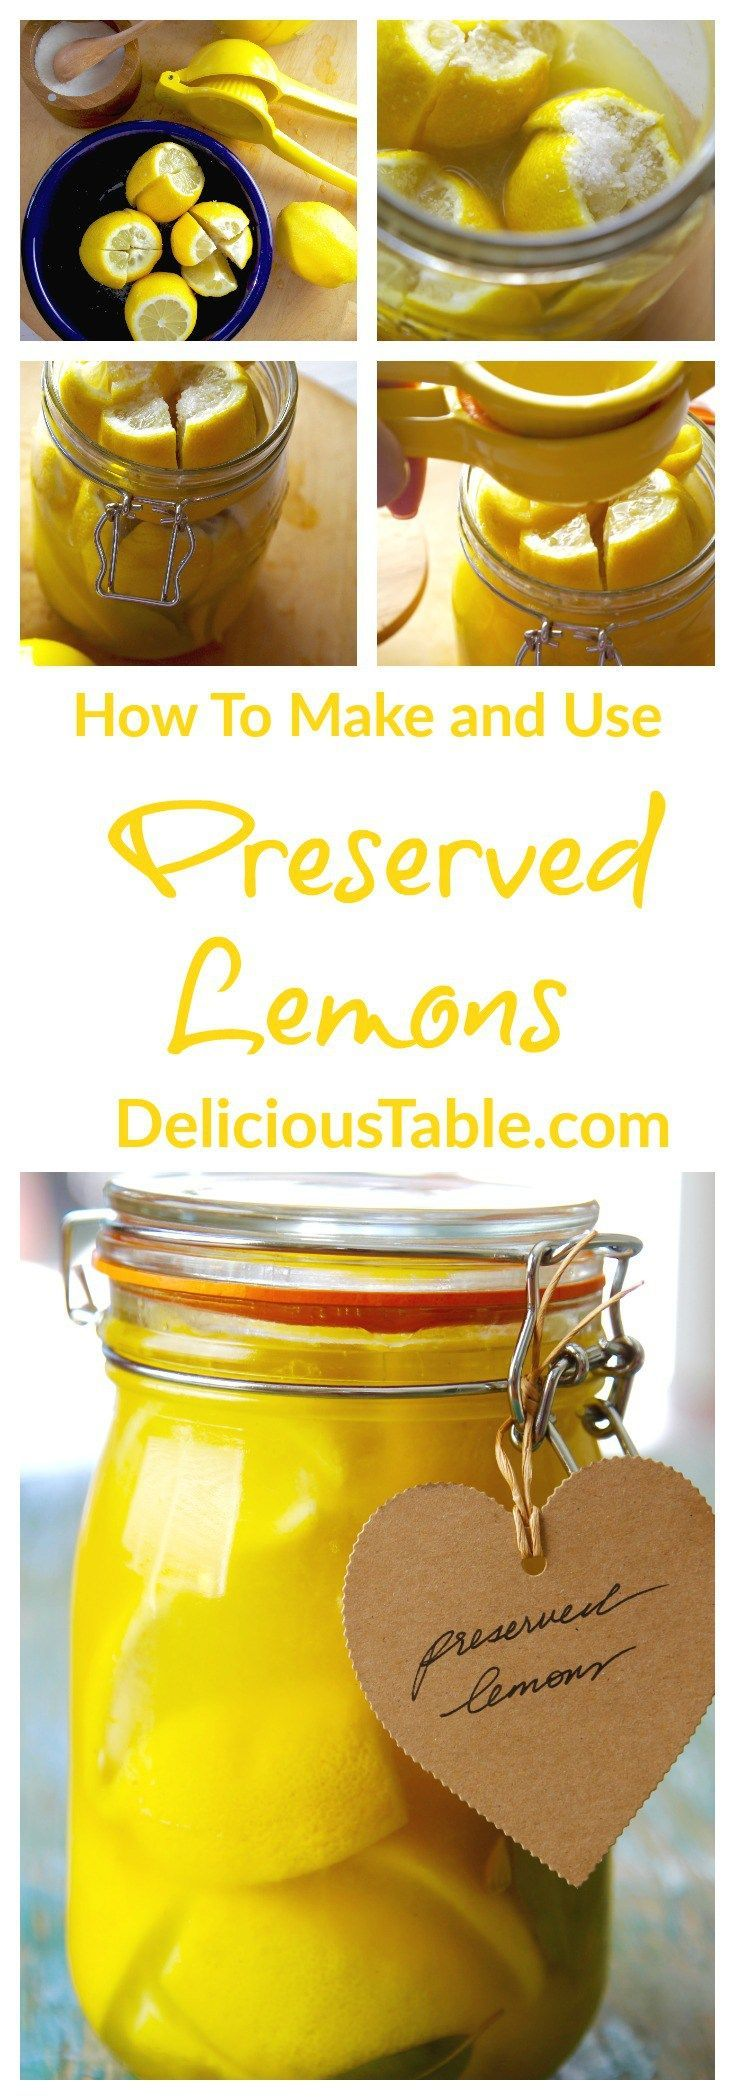 """Preserved lemons add INCREDIBLE fresh intense """"lemony"""" flavor; try on roast chicken, grilled fish, or lemon hummus. Mix into drinks, salads, and dressings. {sponsored}"""